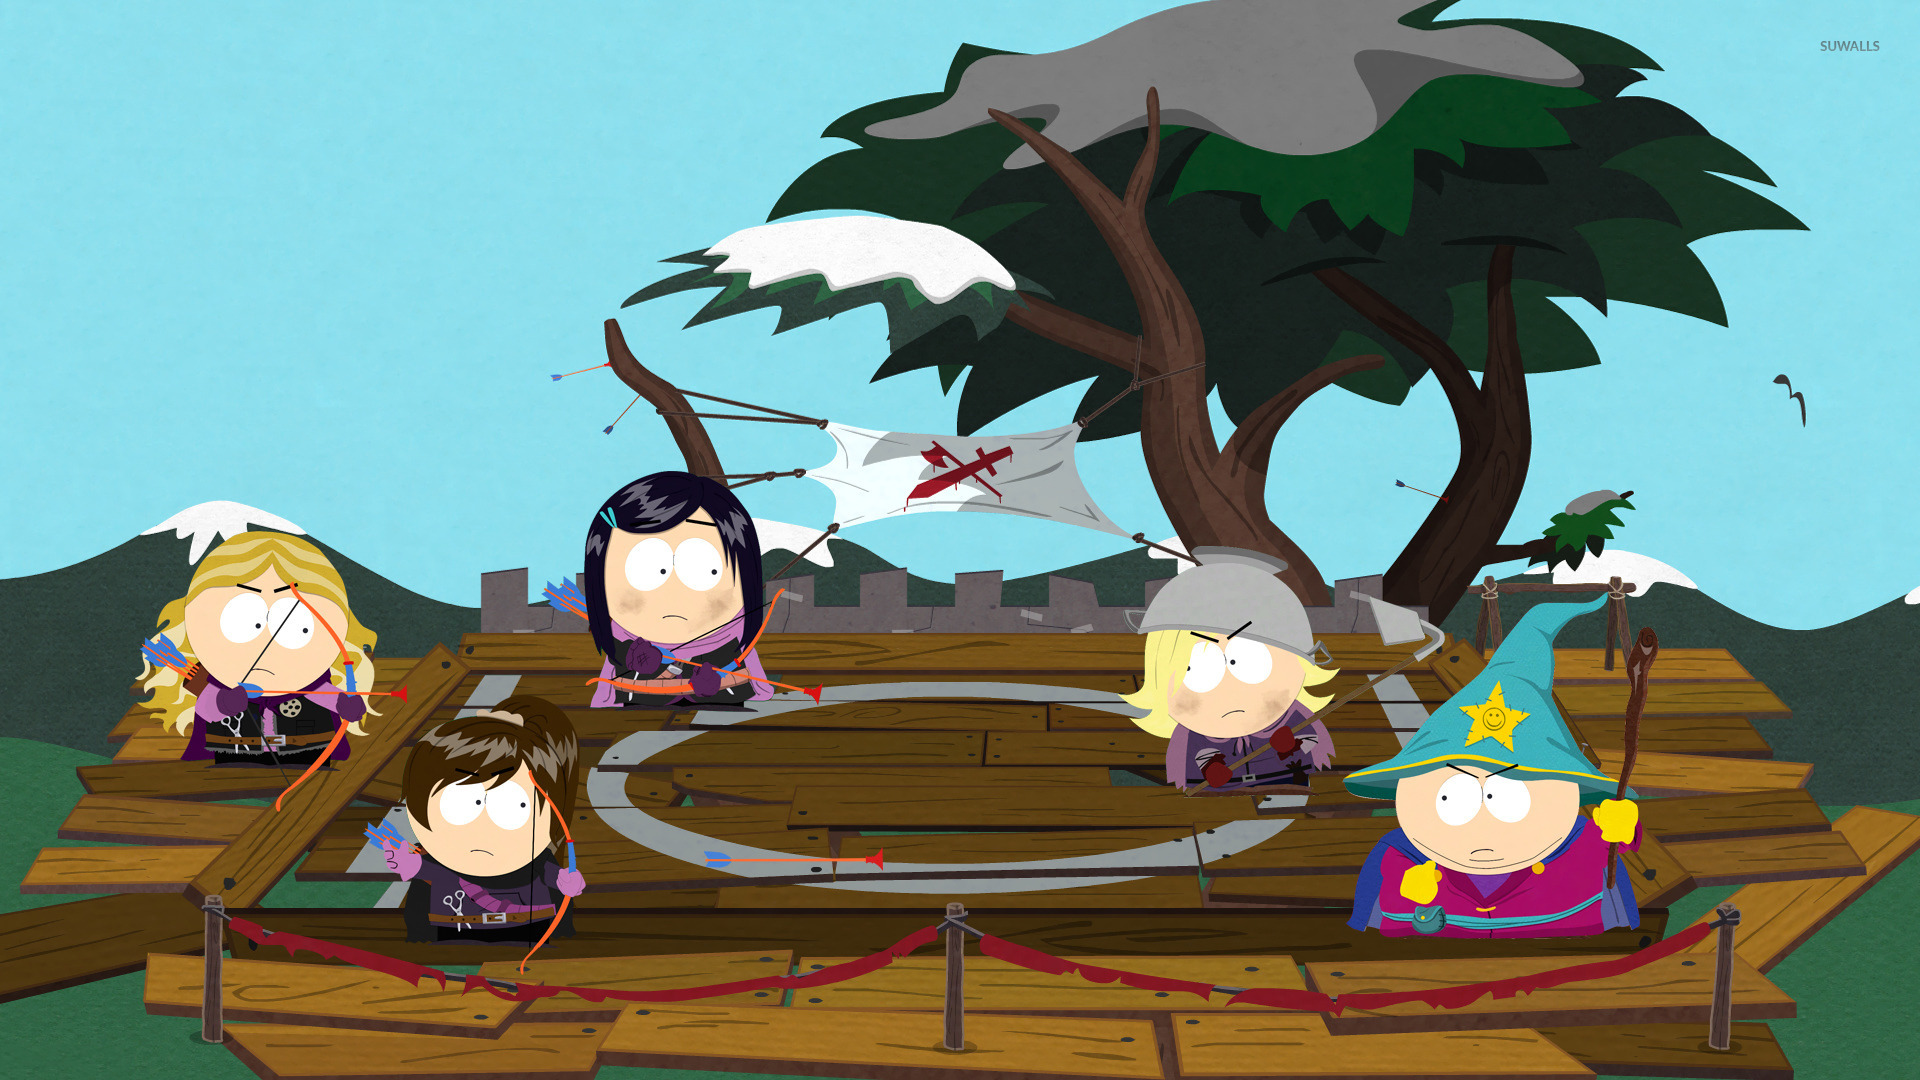 south park the stick of truth 7 wallpaper game